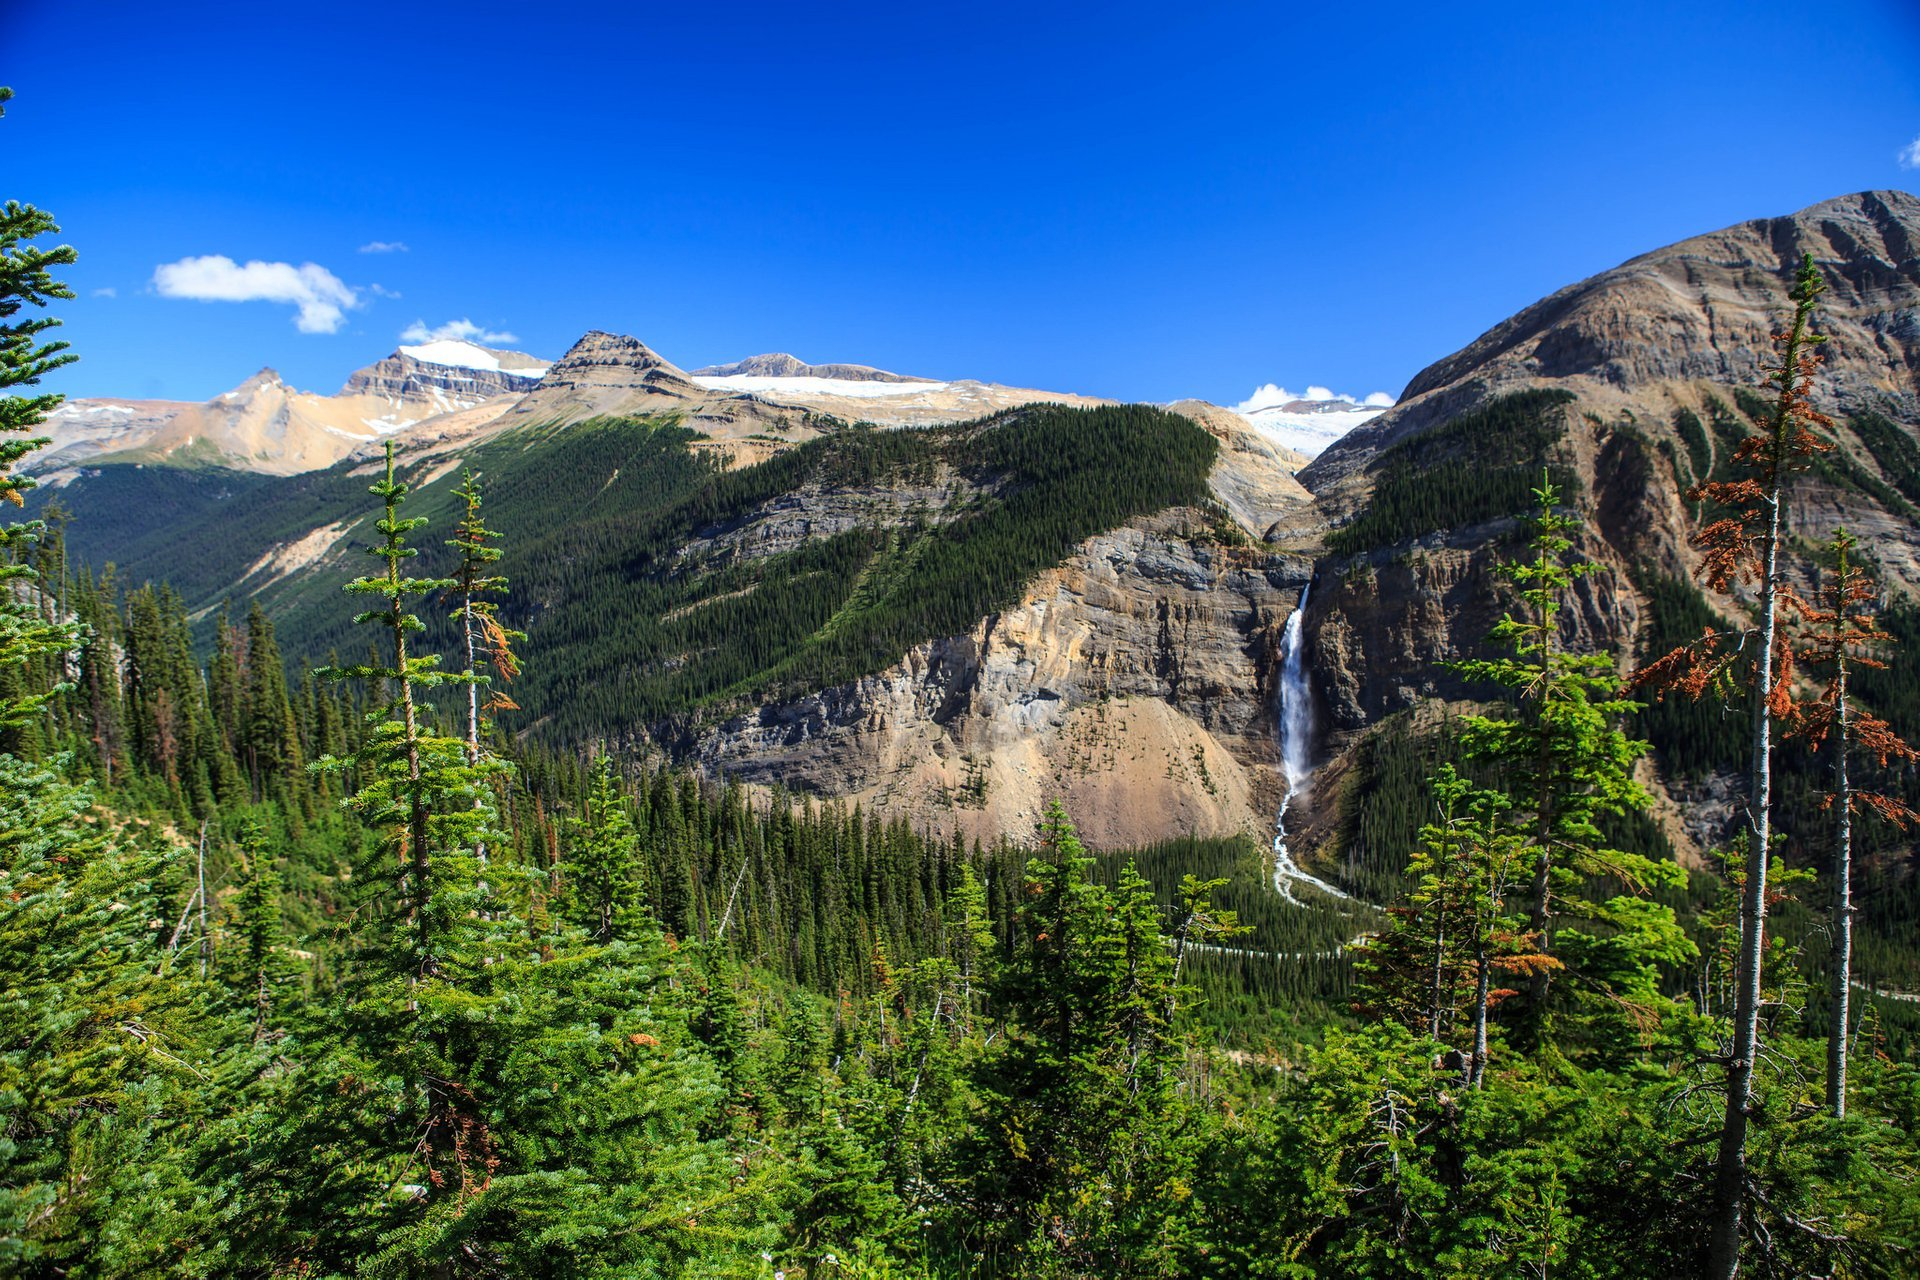 Takakkaw Falls from the Iceline Trail 2019